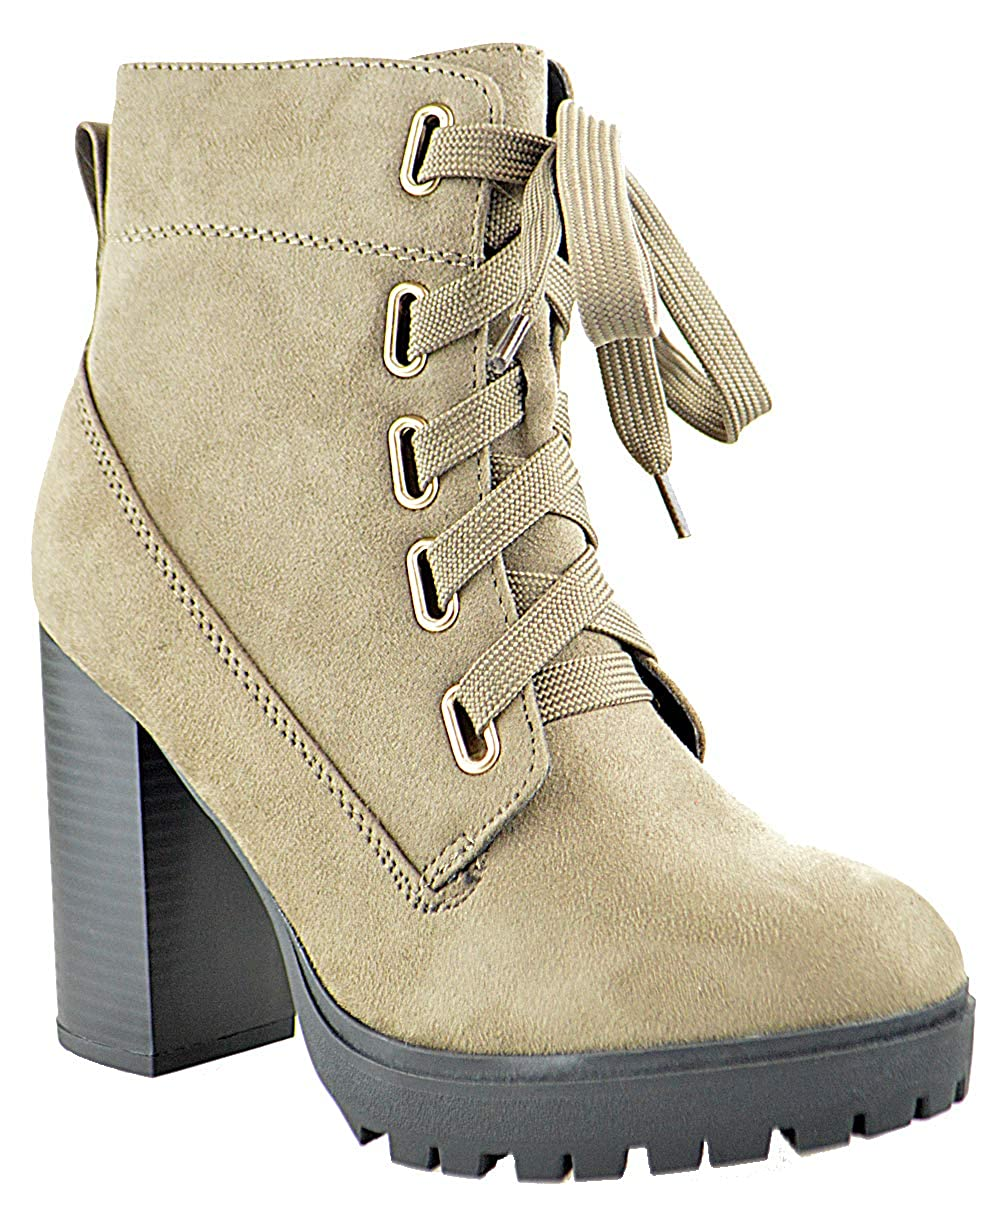 c4ad5933616f8 Amazon.com | SOD Timeout S Womens Lace Up Chunky Heel Platform ...